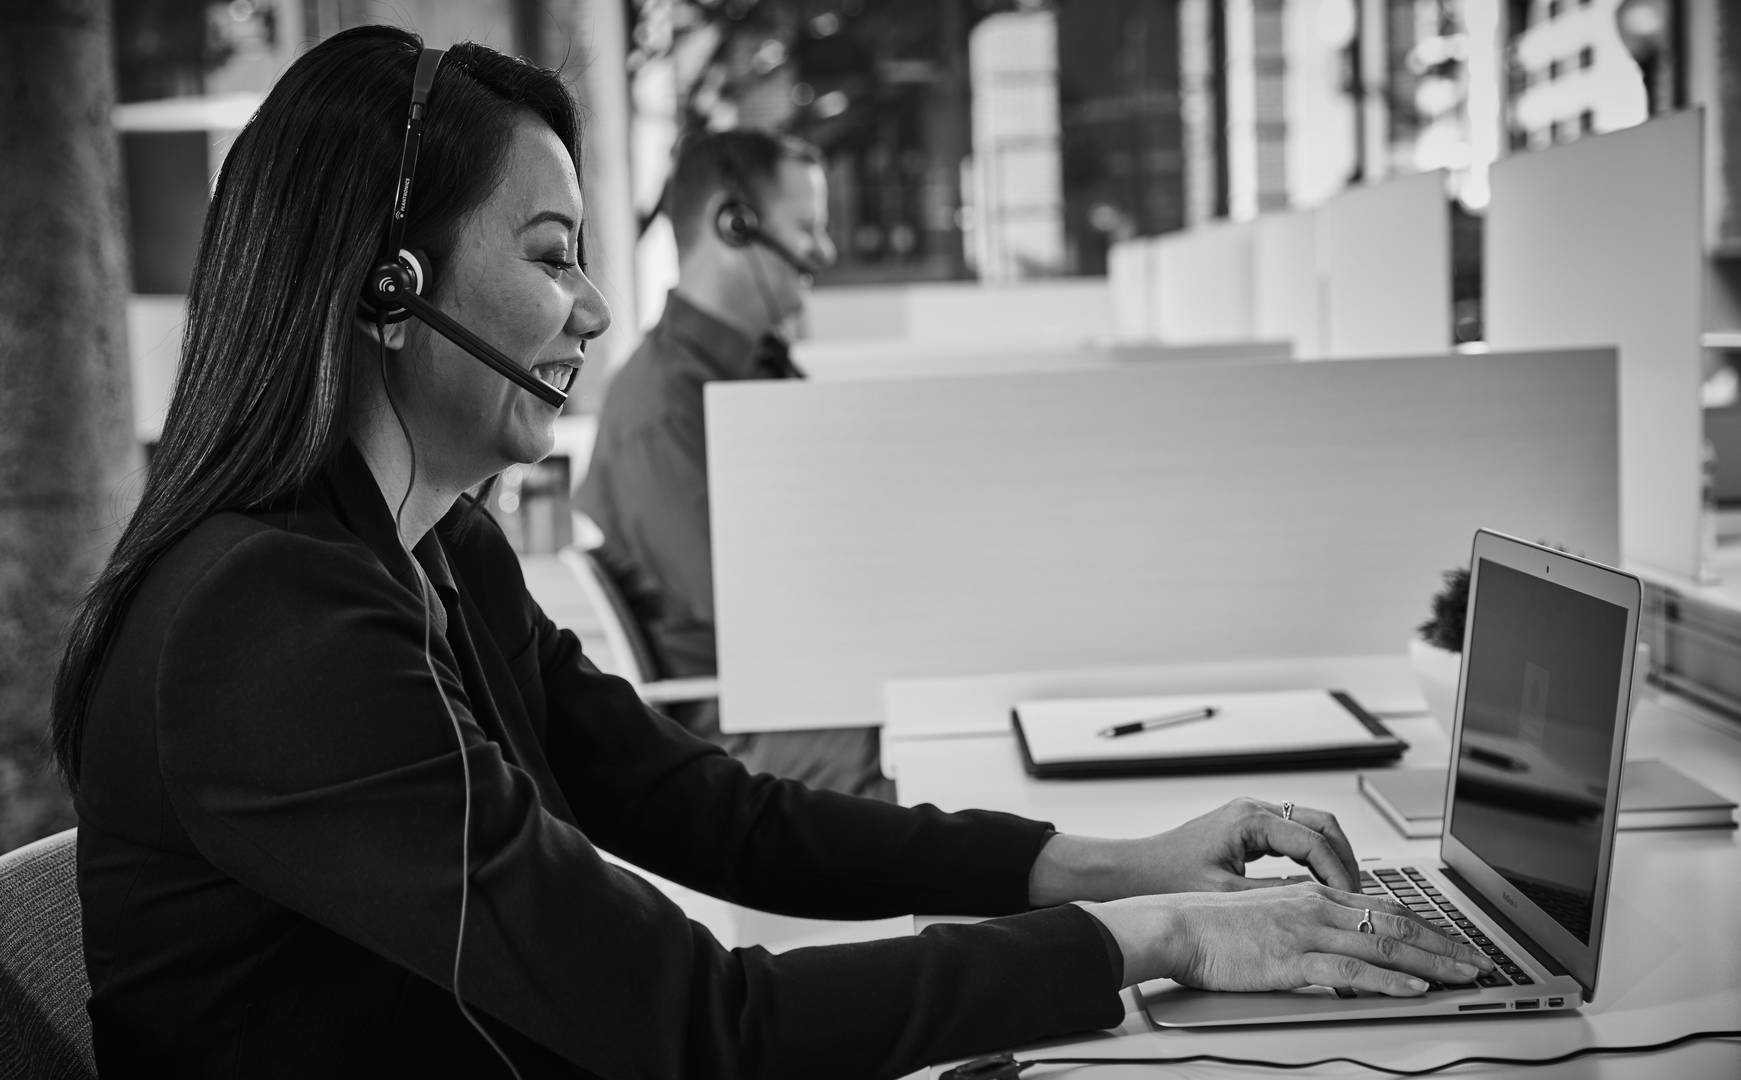 A customer service representative talks on a headset while typing at a computer